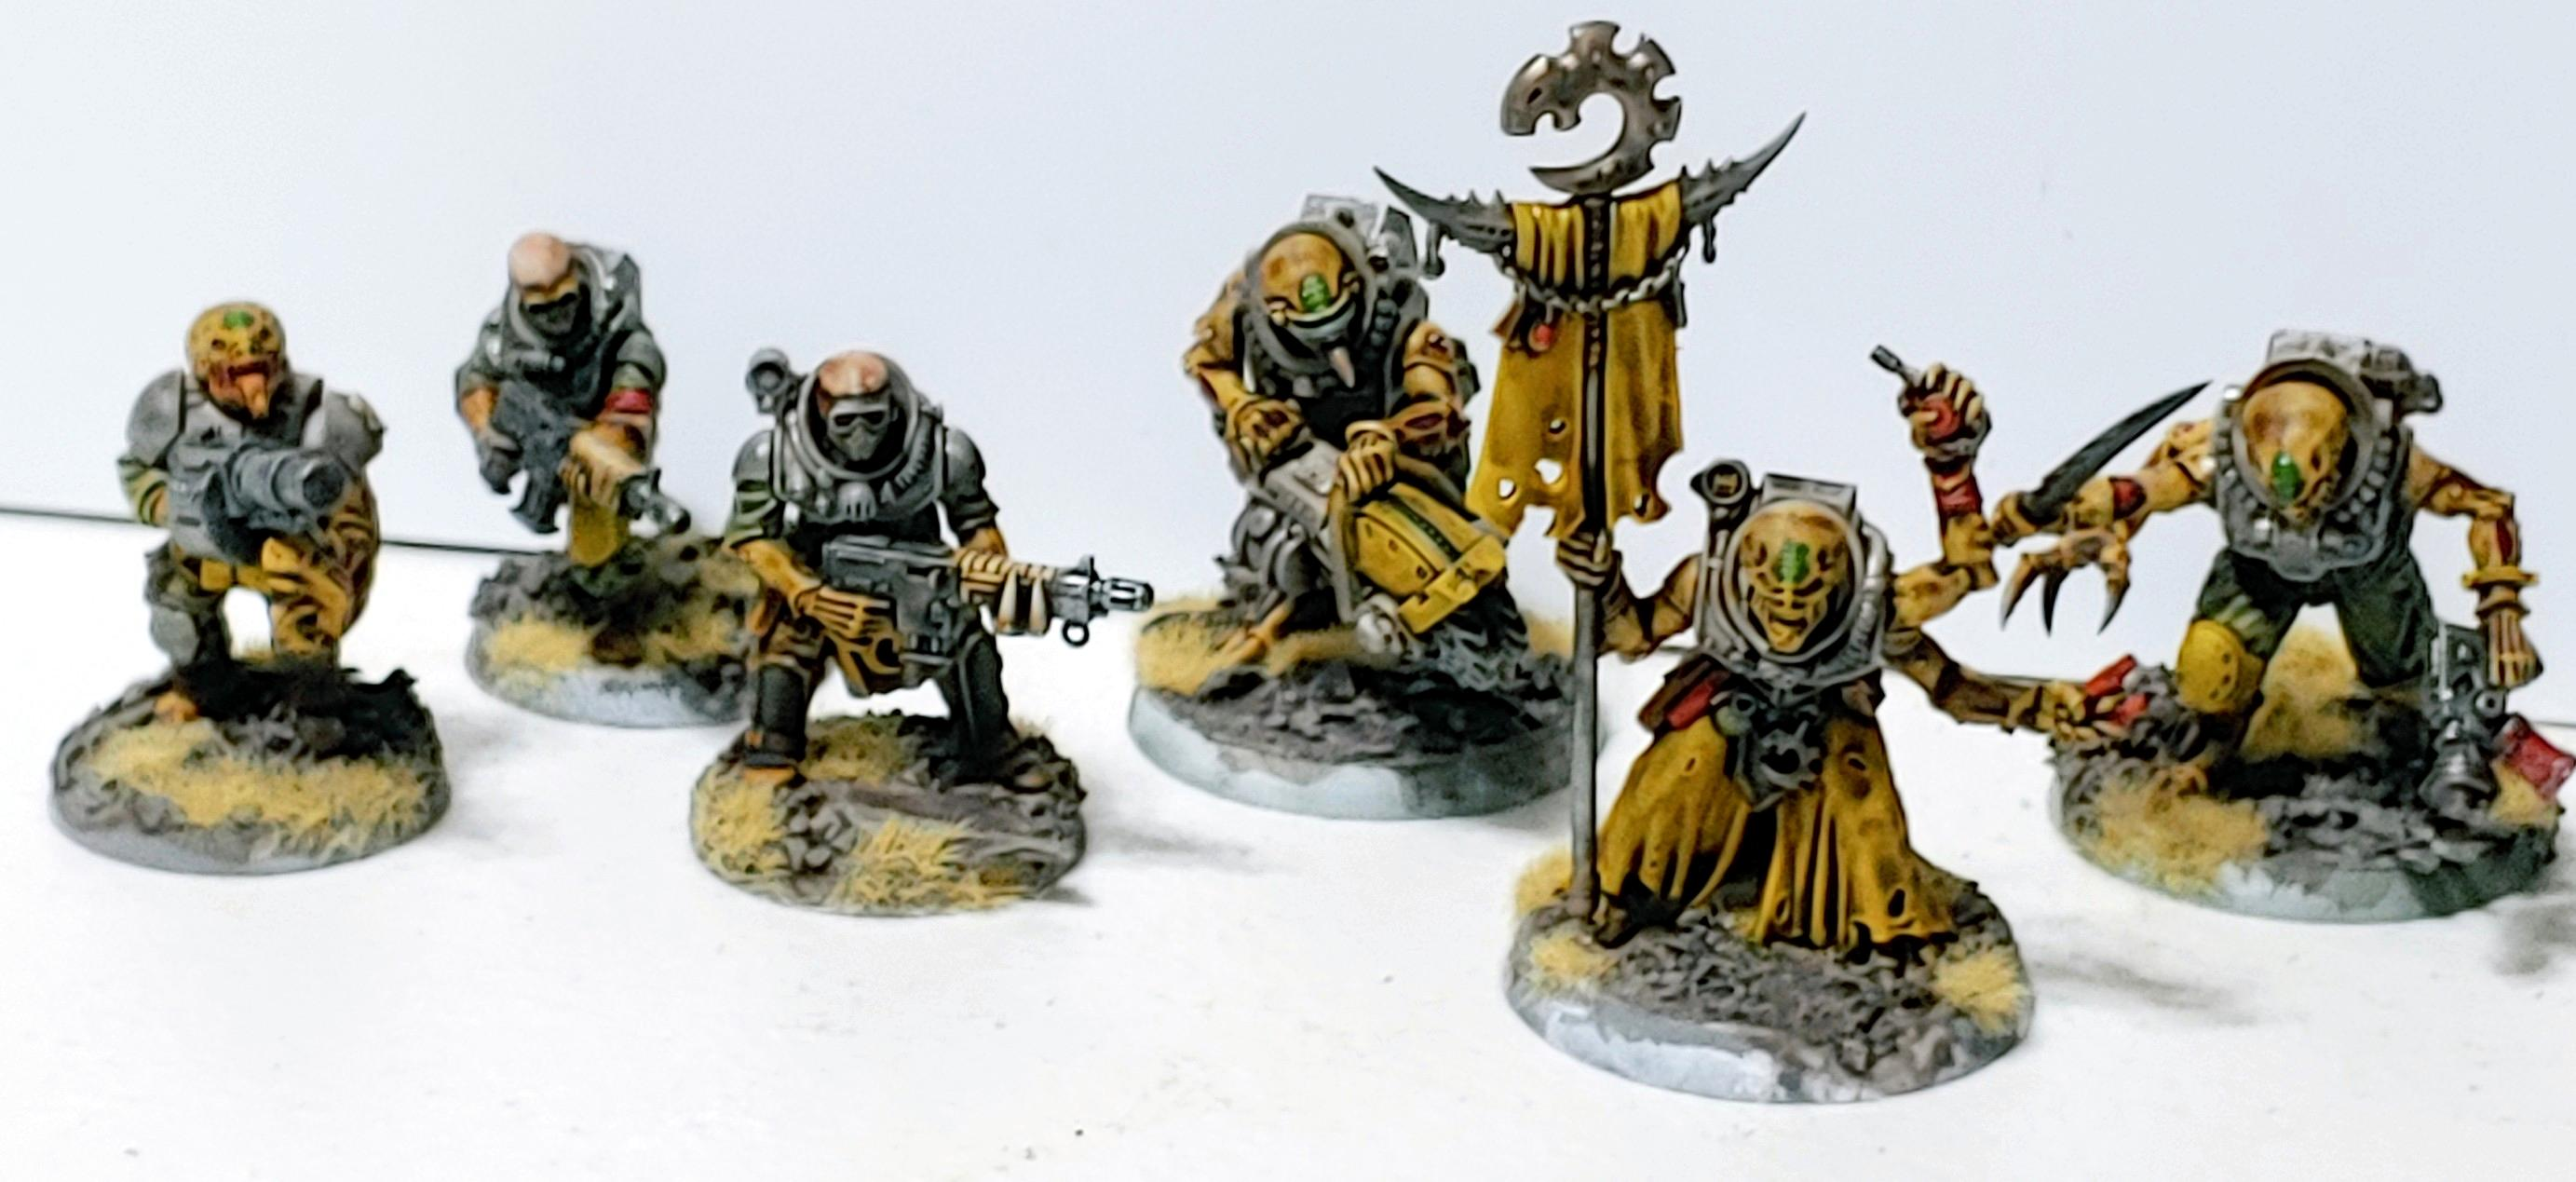 Acolytes and Neos